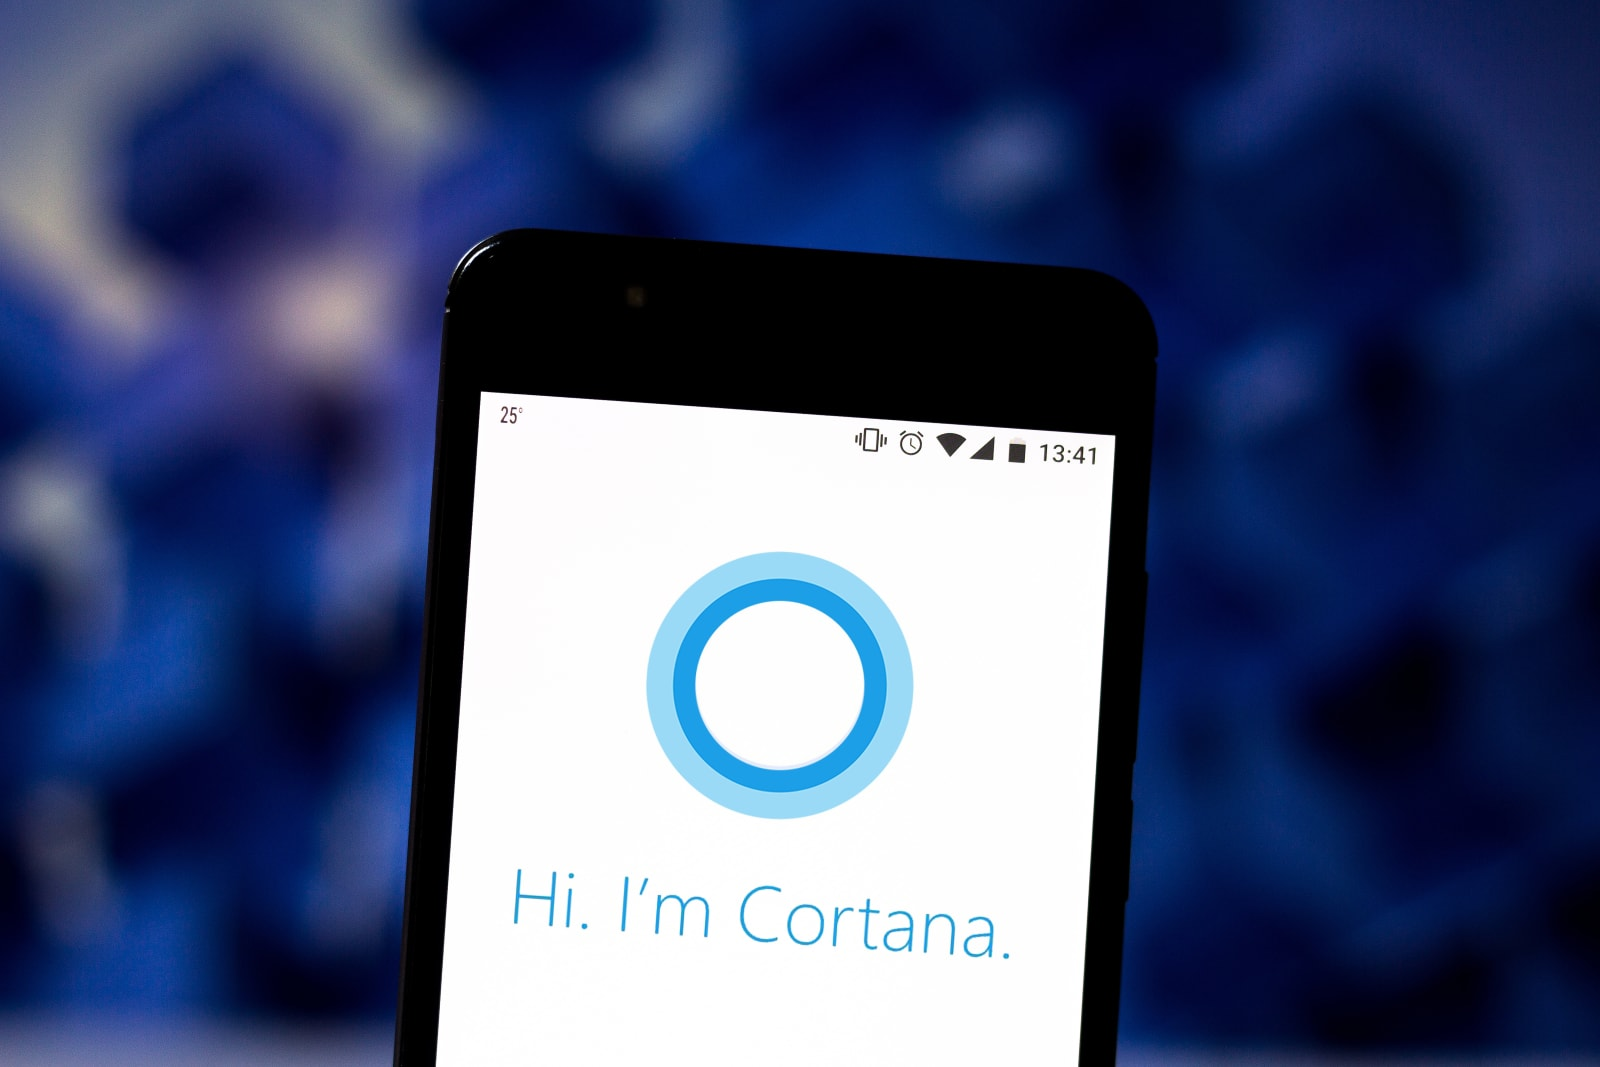 Cortana app will stop working on phones in some countries